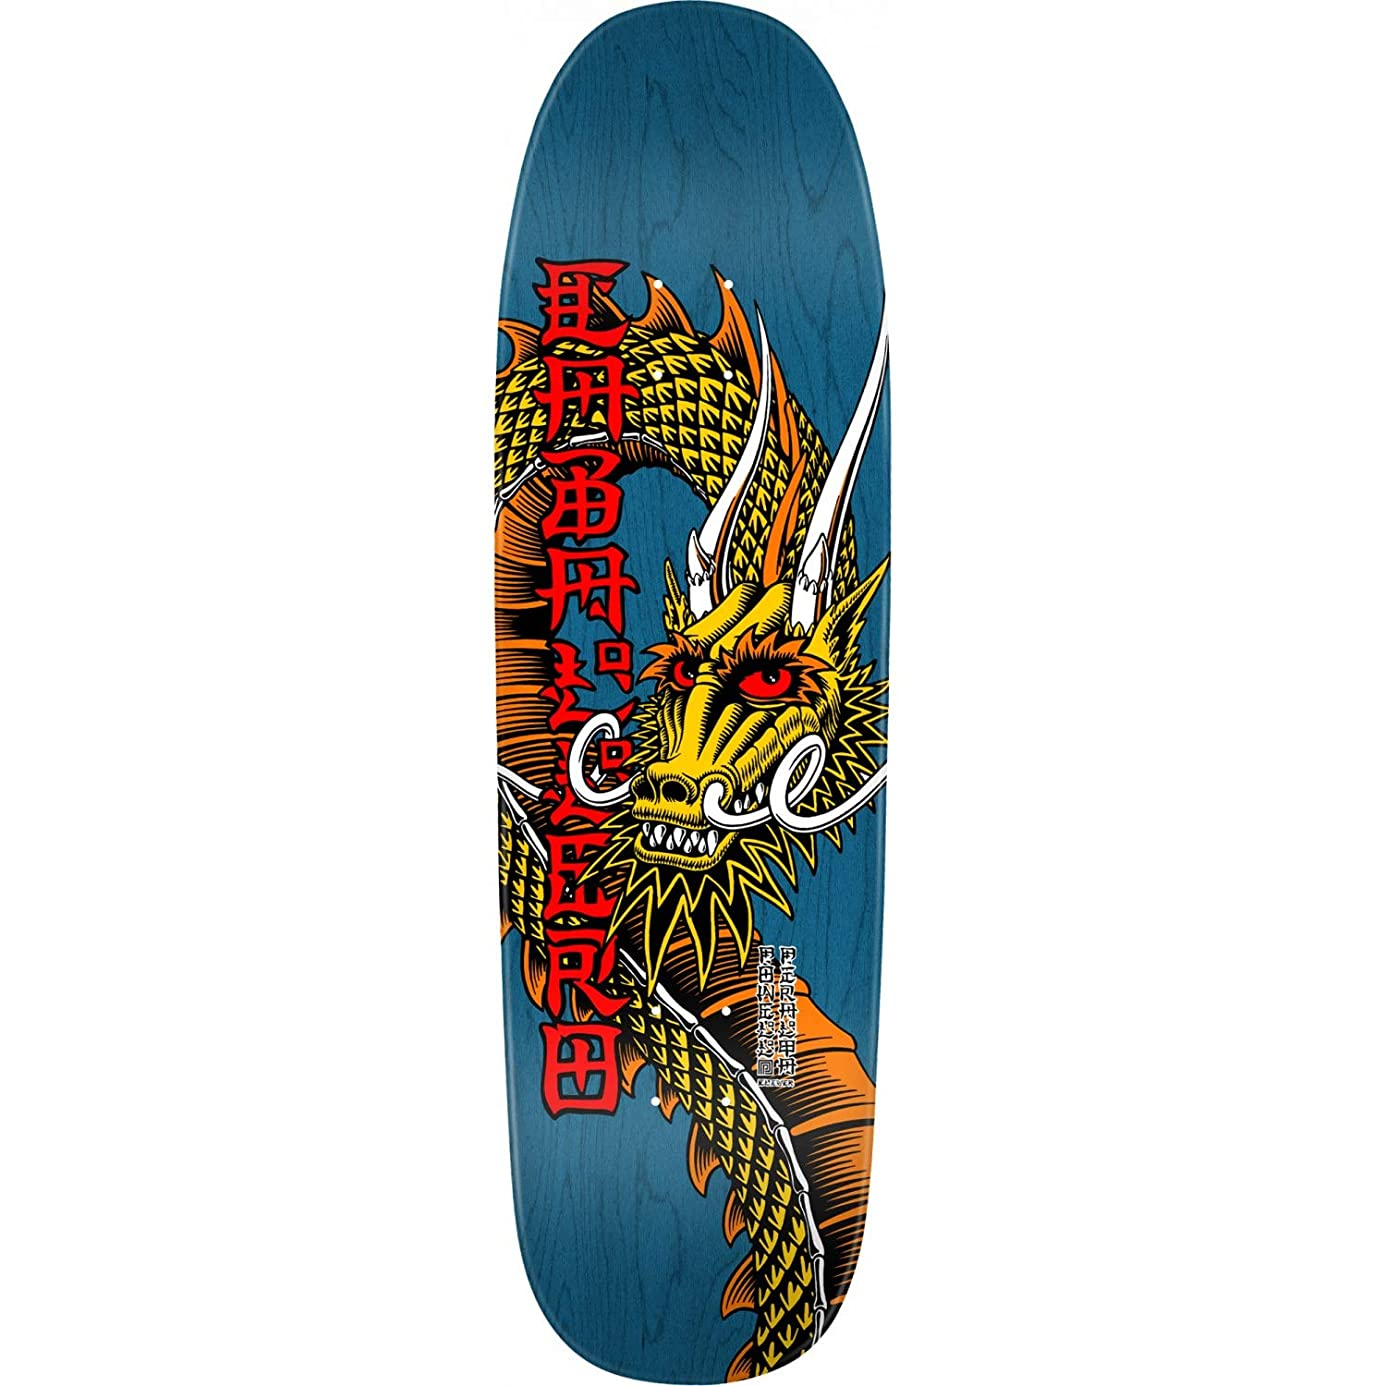 Powell-Peralta Caballero Ban This Blue Stain Skateboard Deck